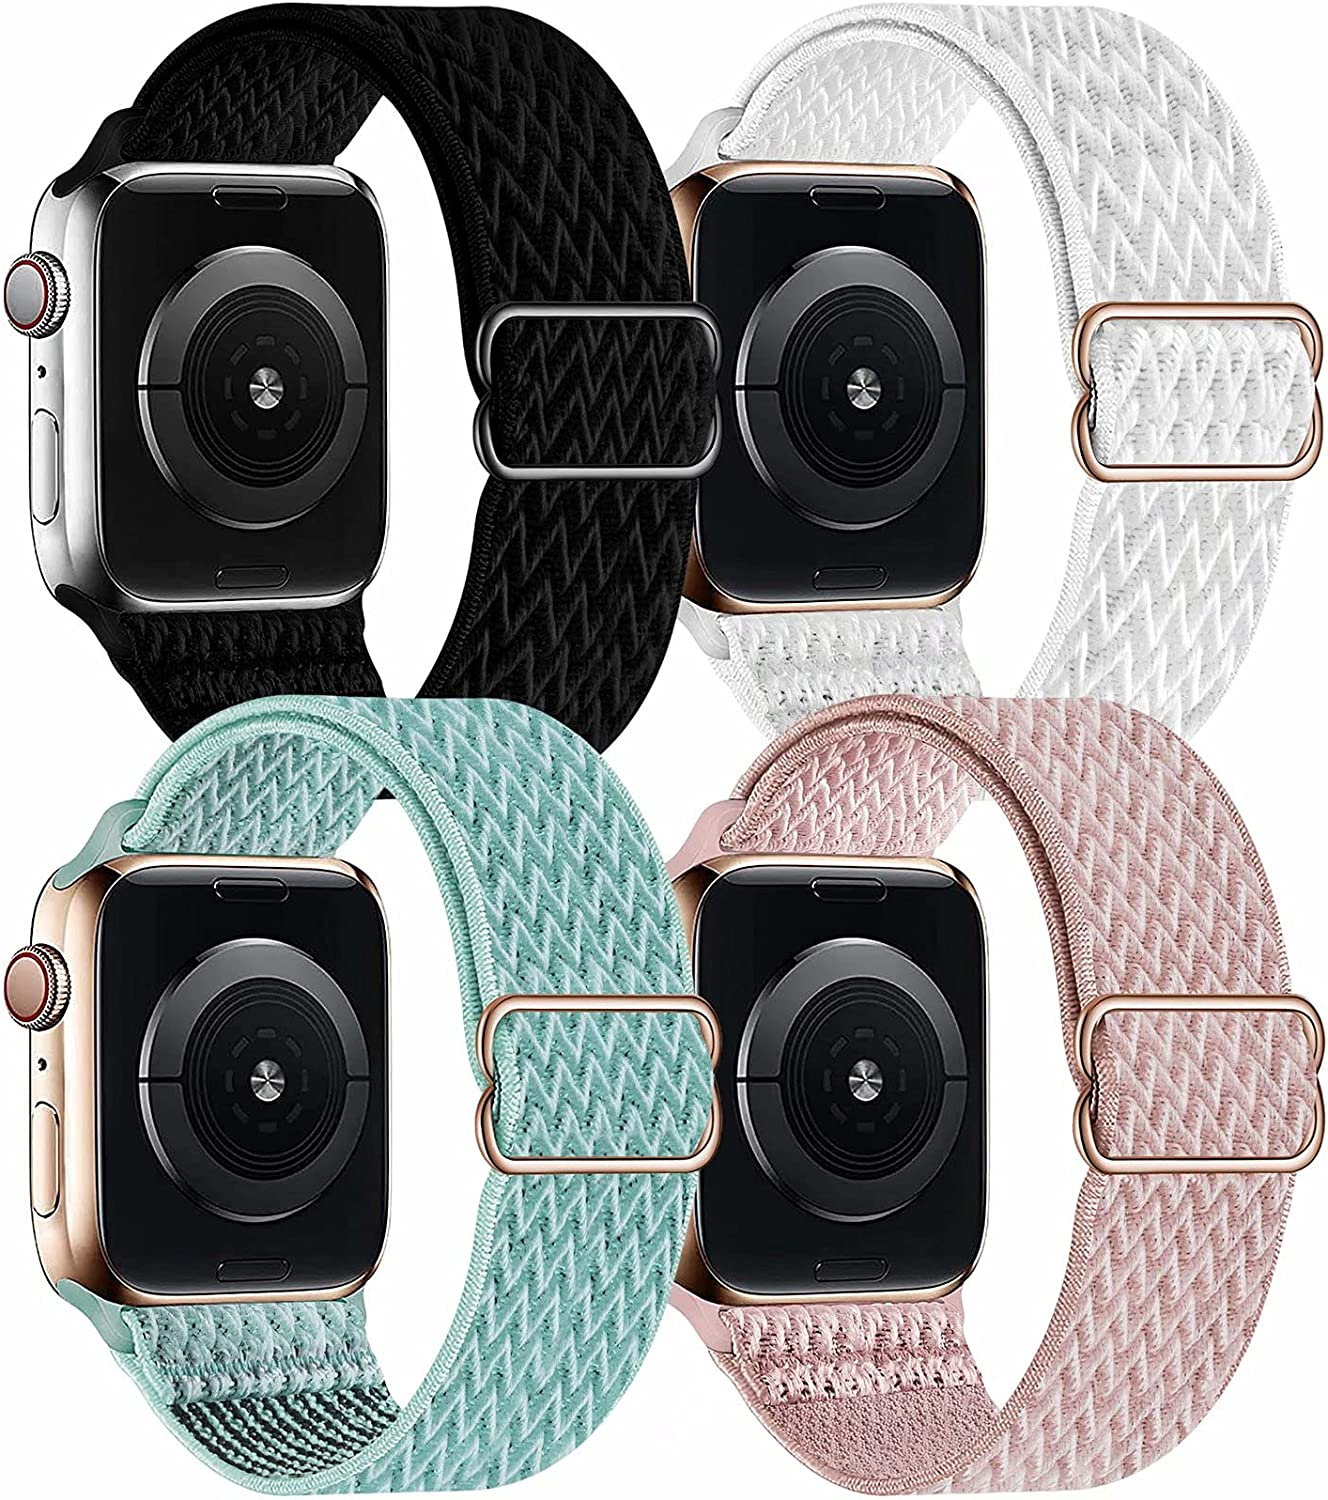 OHCBOOGIE 4 Pack Nylon Solo Loop Compatible with Apple Watch Bands,Stretch Adjustable Soft Sport Breathable Straps for Iwatch Series 6/5/4/3/2/1/SE,Black/White/Marine Green/Rose Pink,42/44mm